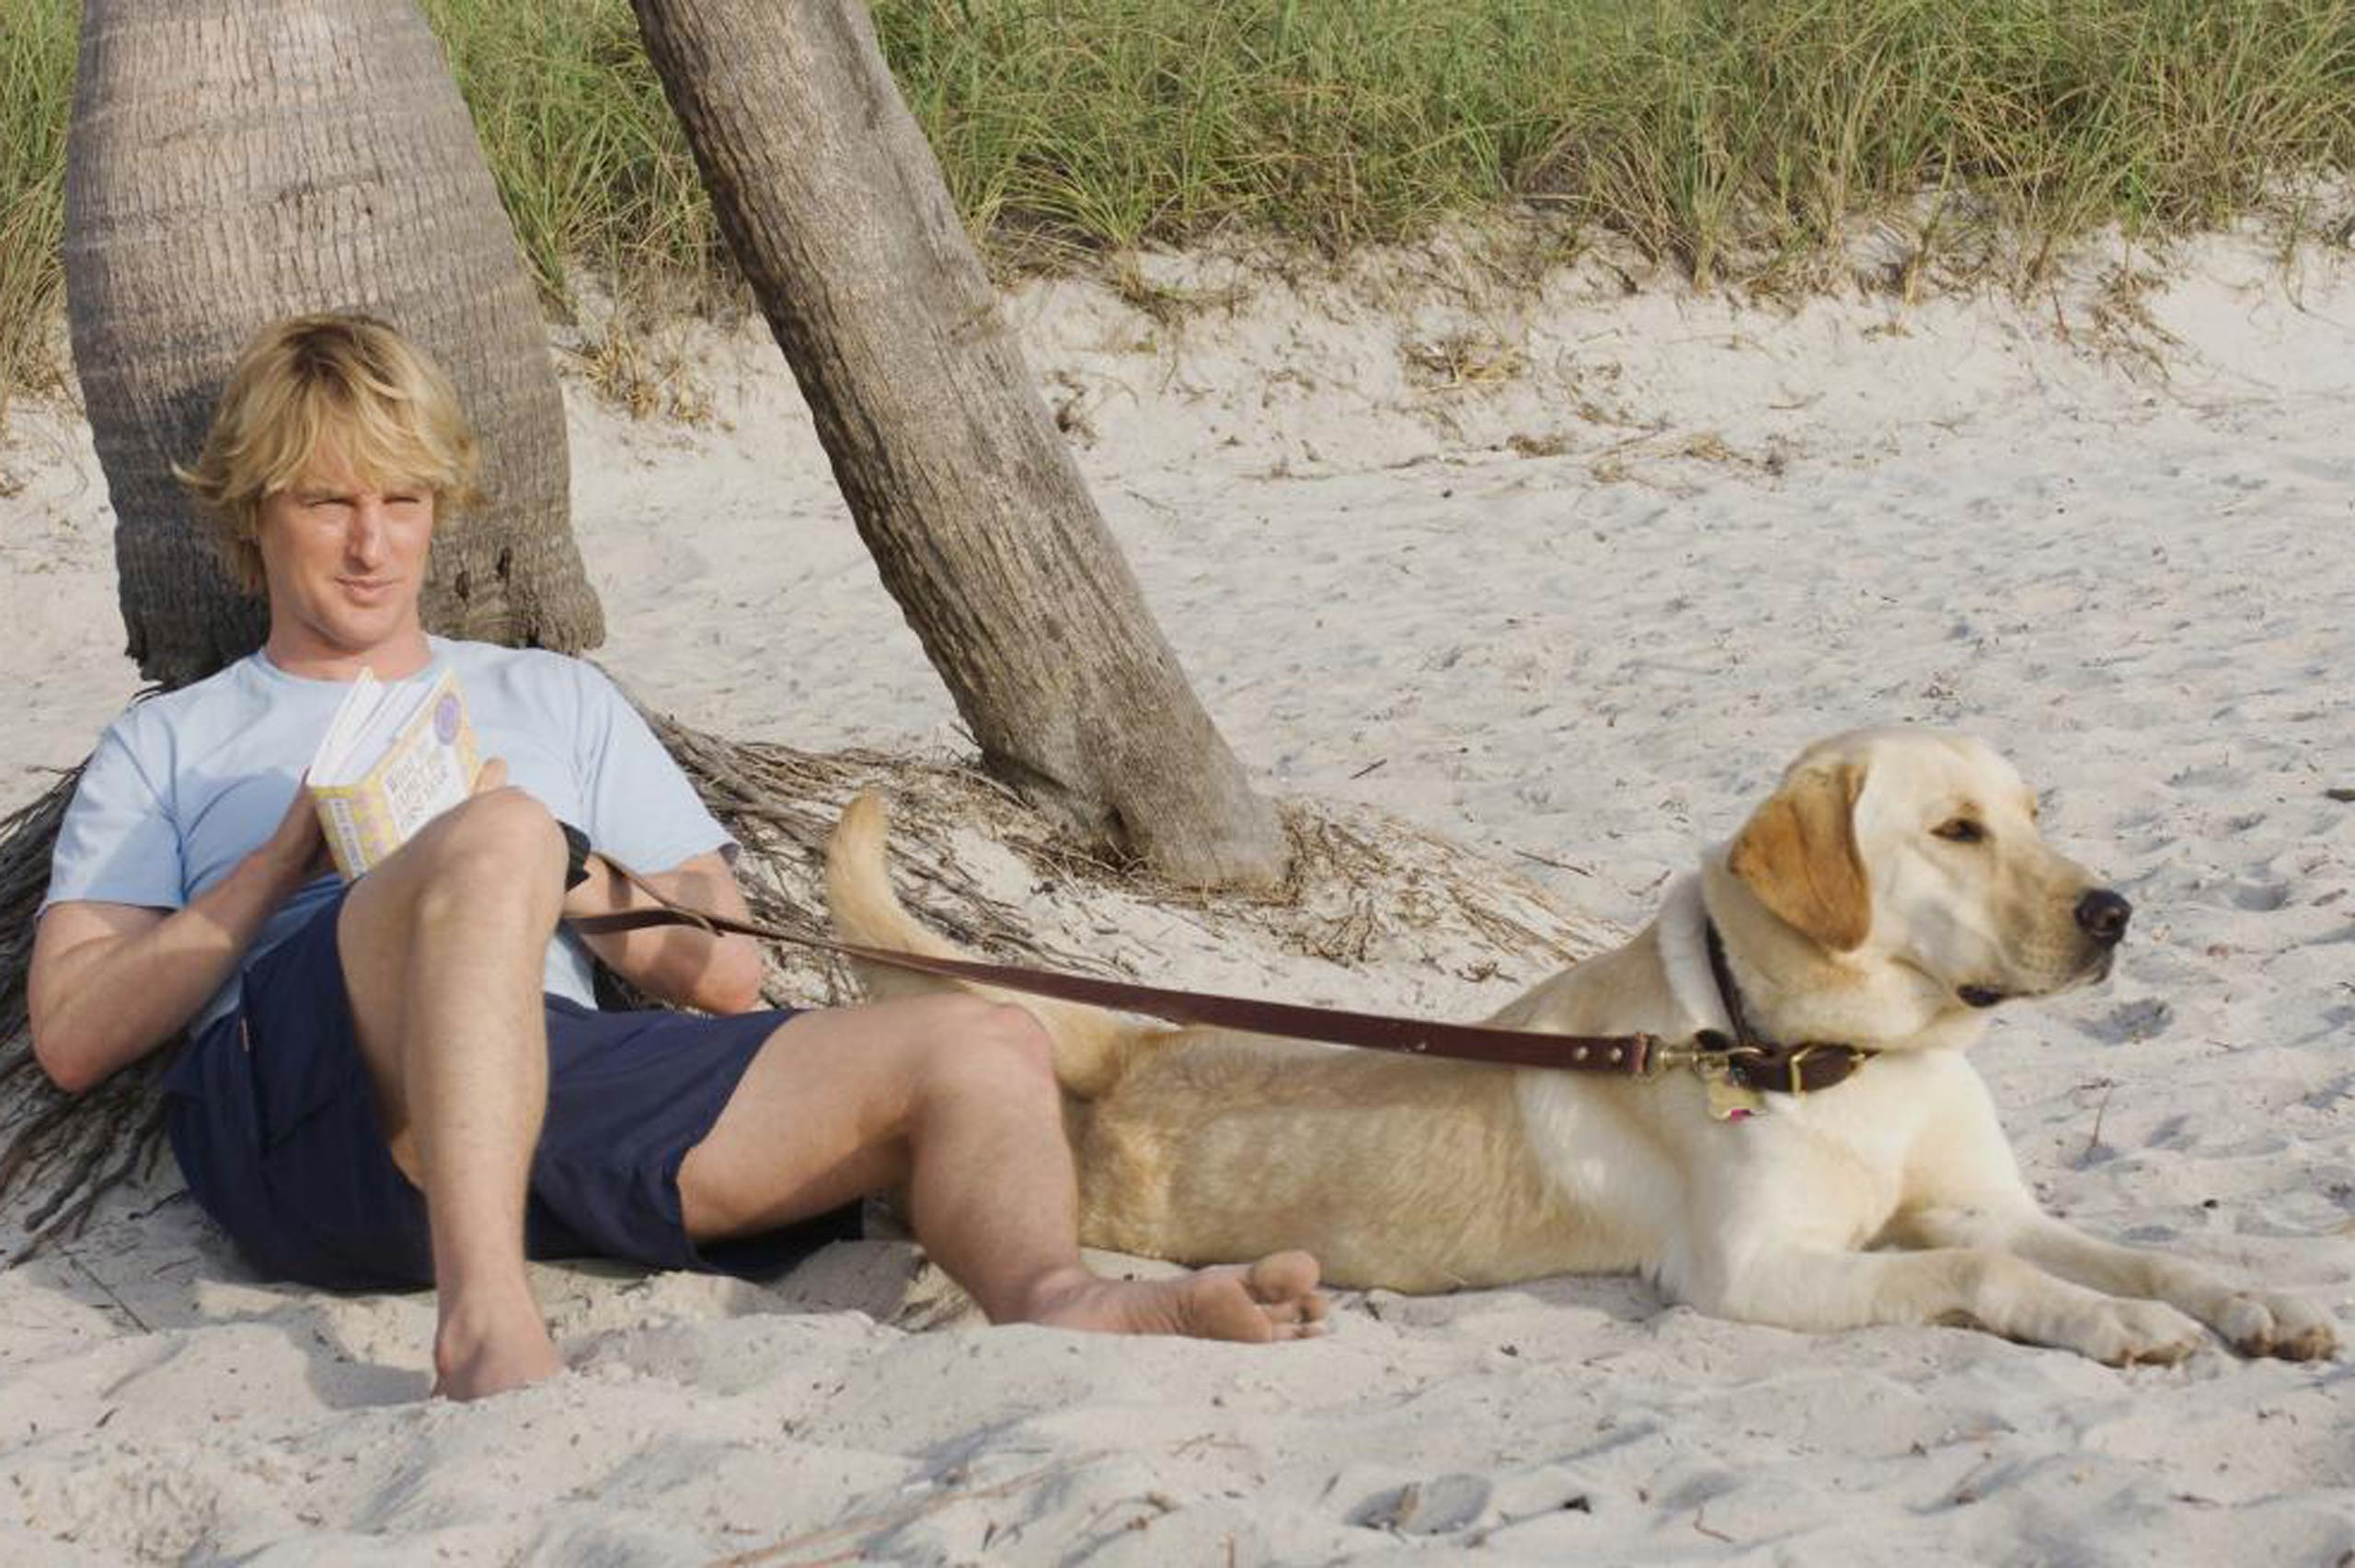 Marley & Me (NBC)                                                              Though the Marley & Me movie may have been a tear-jerker, the proposed TV show will be a comedy. Picking up where the film left off, John, Jenny and their three children will be forced to adopt a new stray puppy — whom they name Marley, of course.